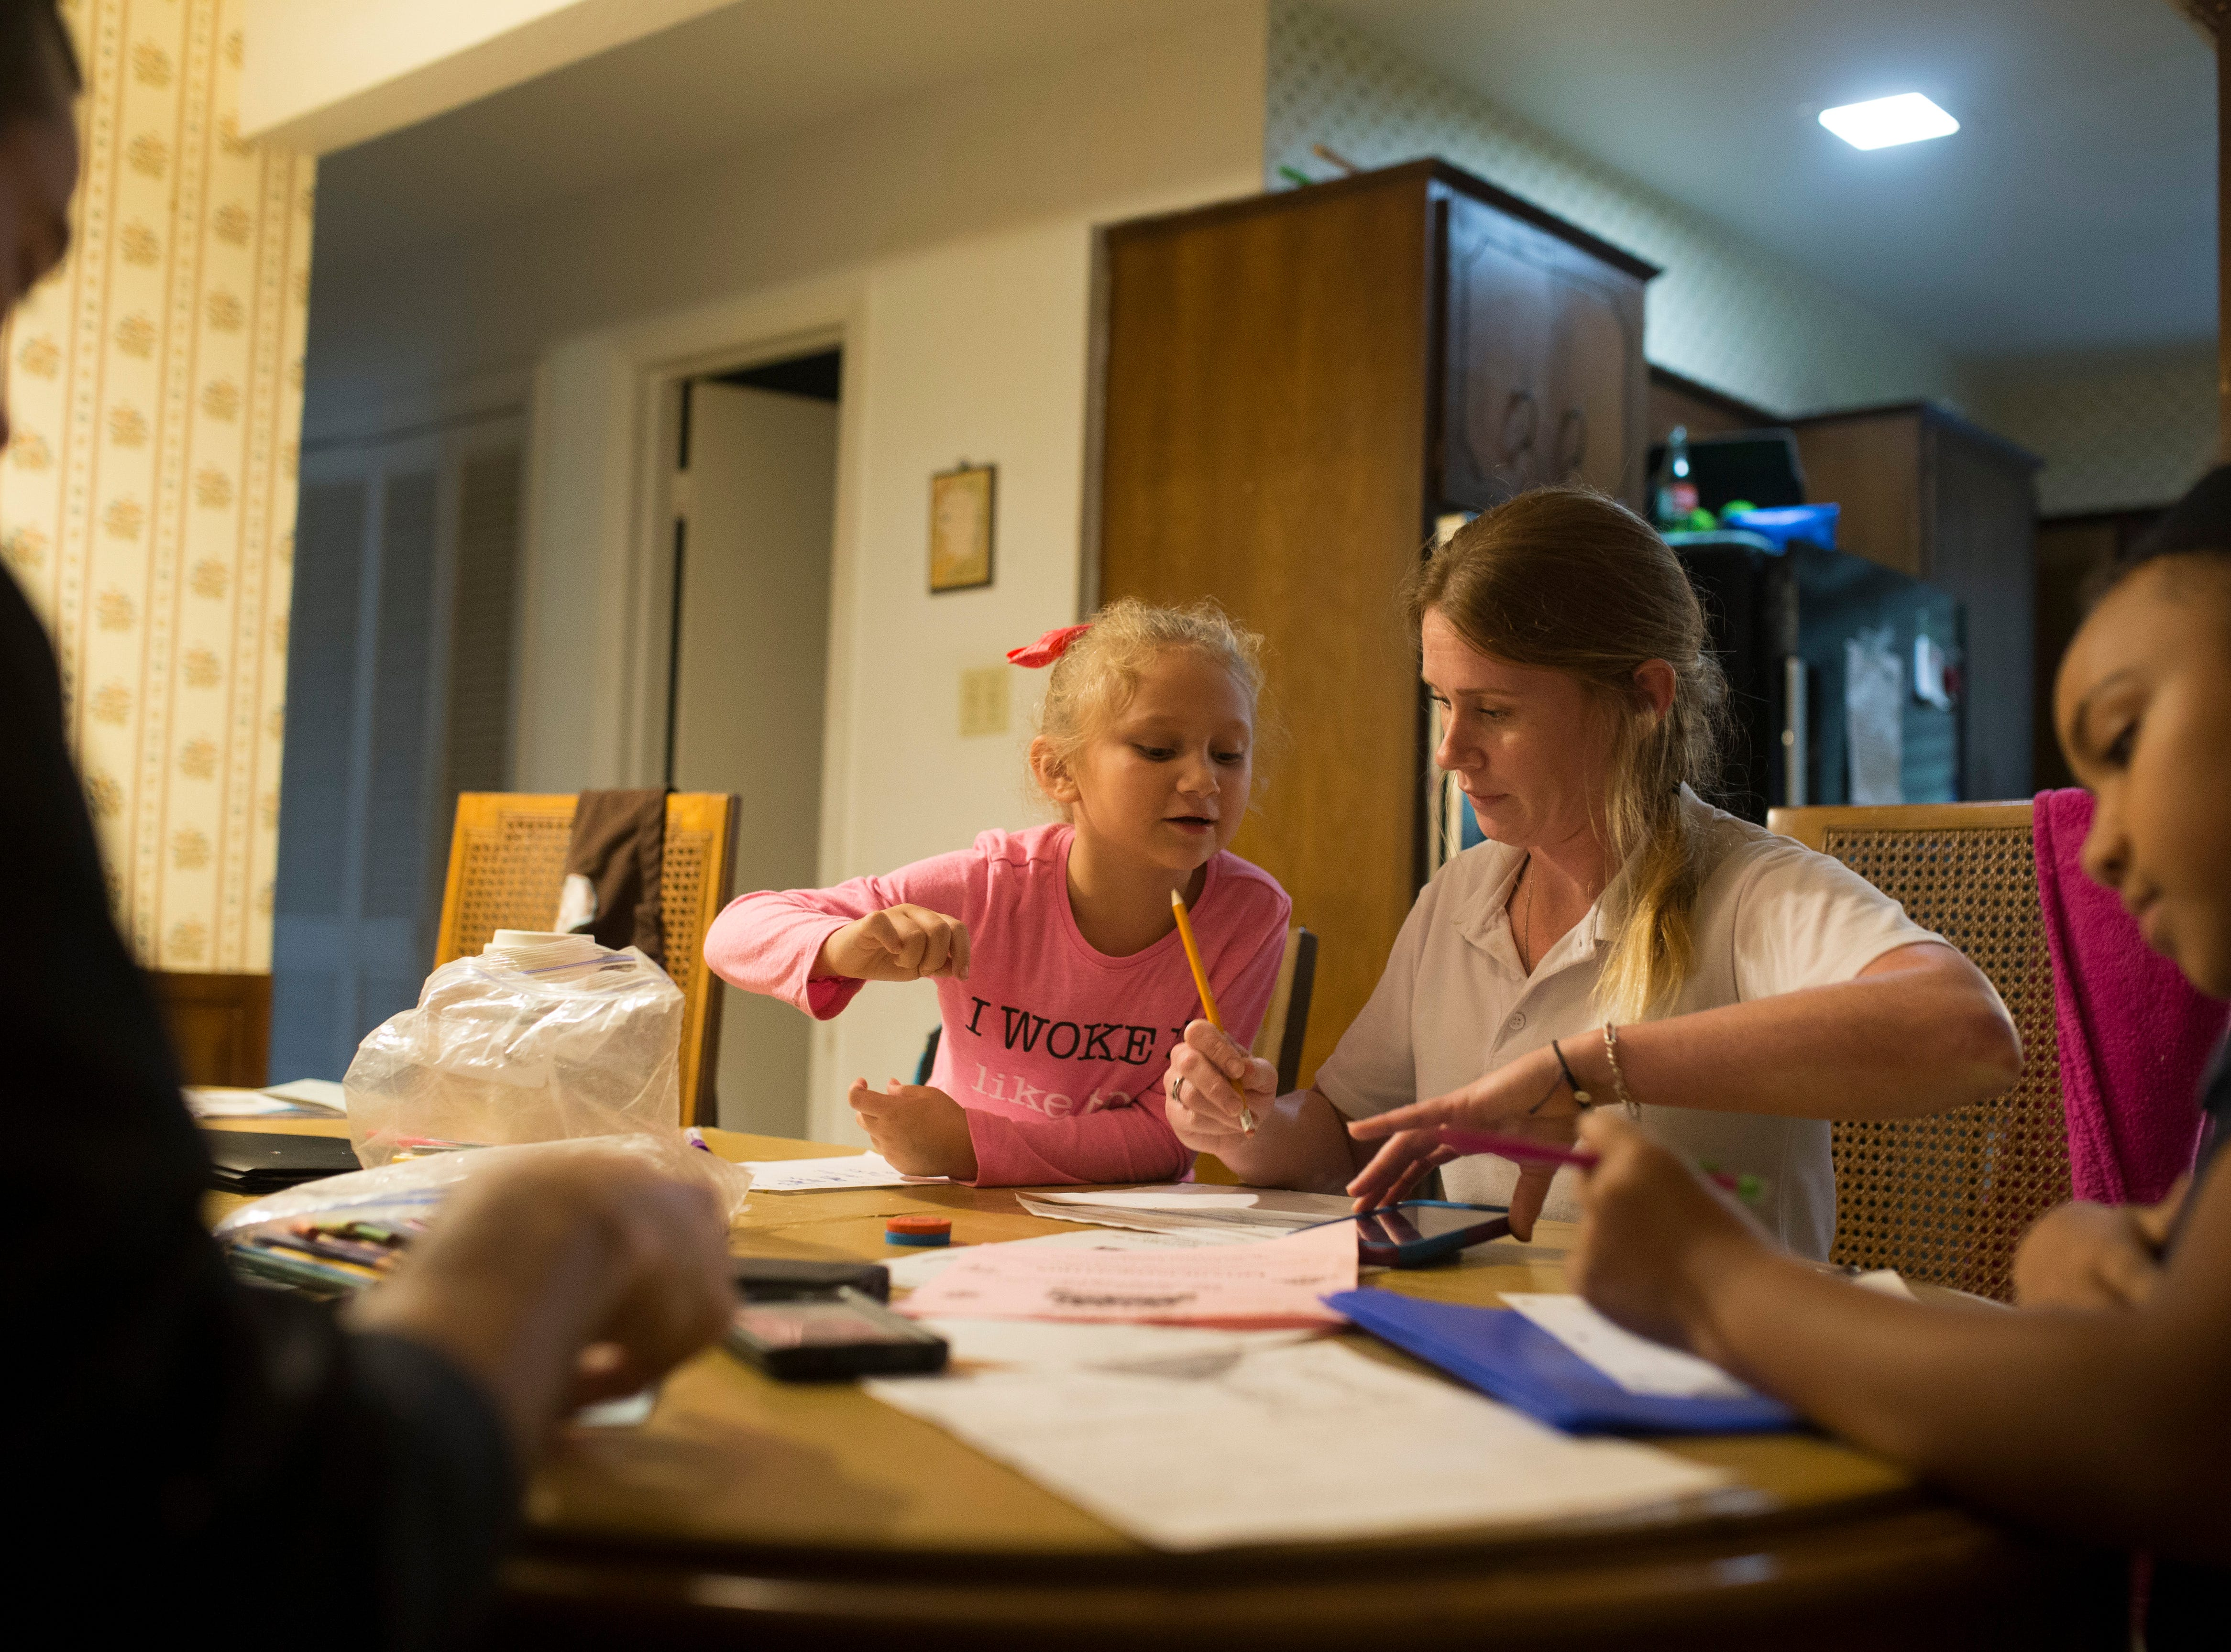 Karah Walters (center) helps her daughter with her homework on Wednesday, Oct. 24, 2018 in Corpus Christi. Walters struggled with drug addiction for years before she sought help and got sober.